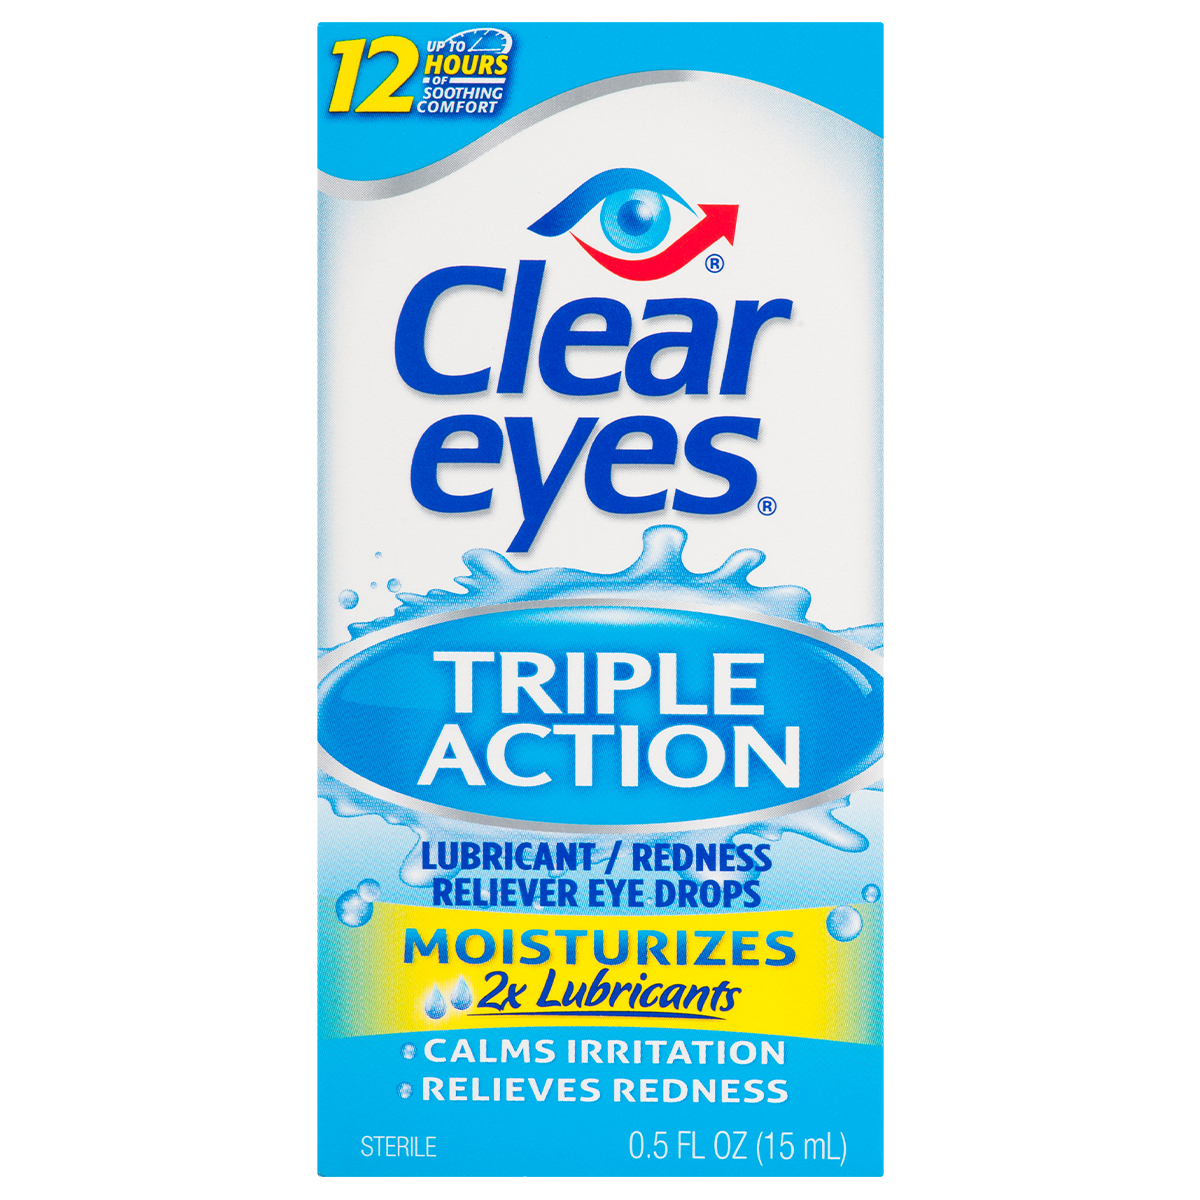 Clear Eyes Triple Action Lubricant/Redness Relief Eye Drops, 0.5 FL OZ